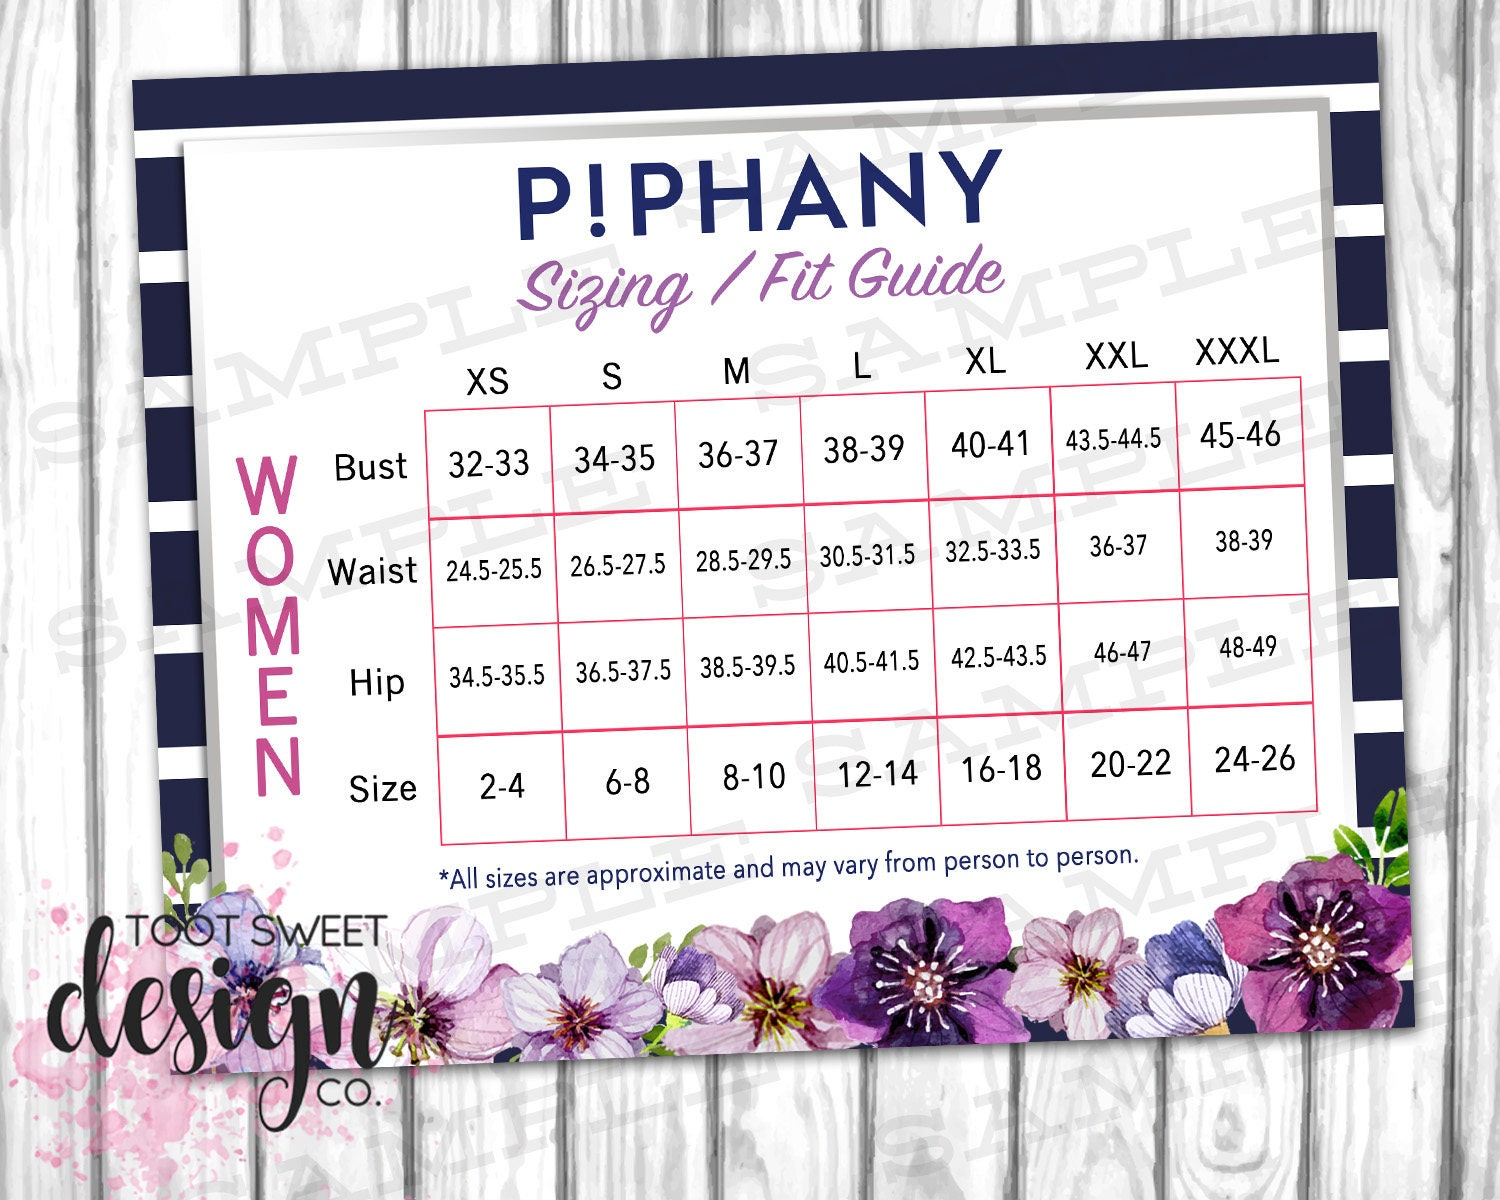 Piphany sizing fit guide piphany size chart poster piphany zoom geenschuldenfo Images